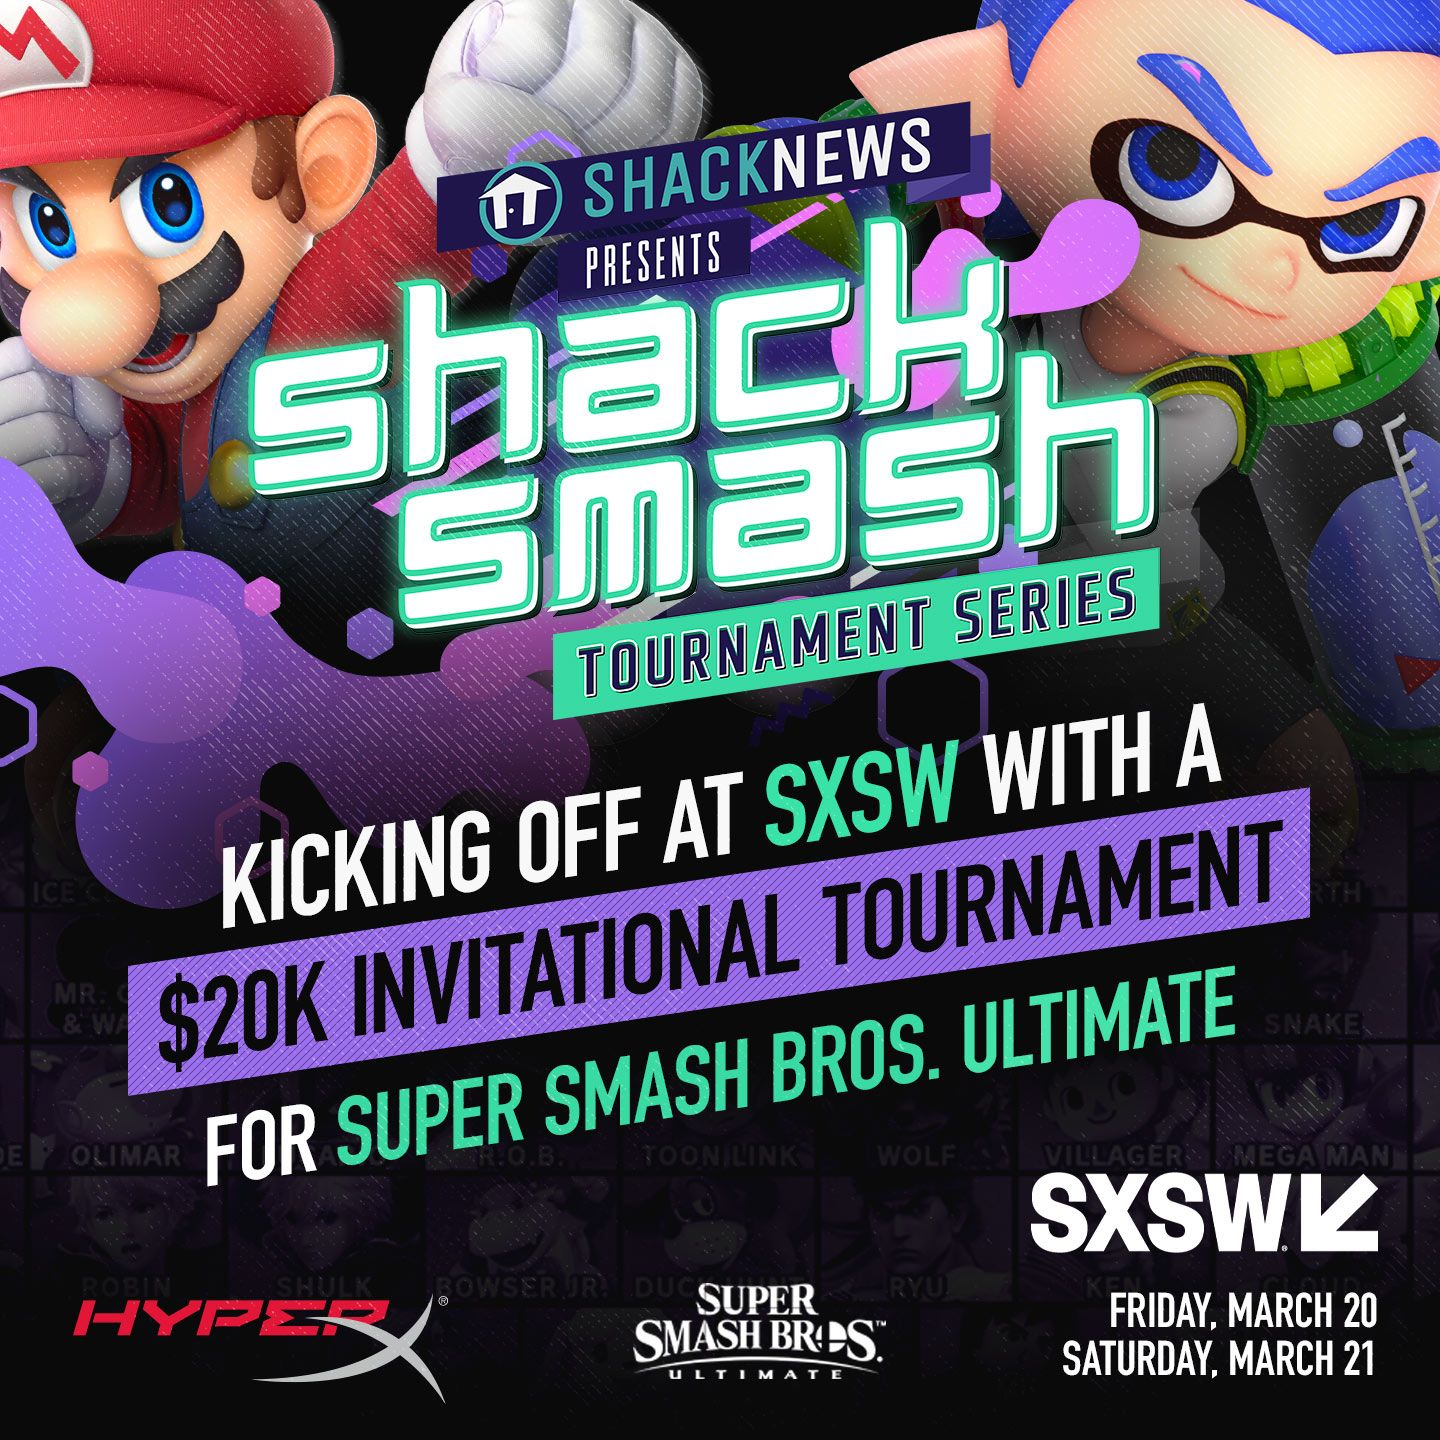 Shack Smash SXSW 2020 is coming up in March.